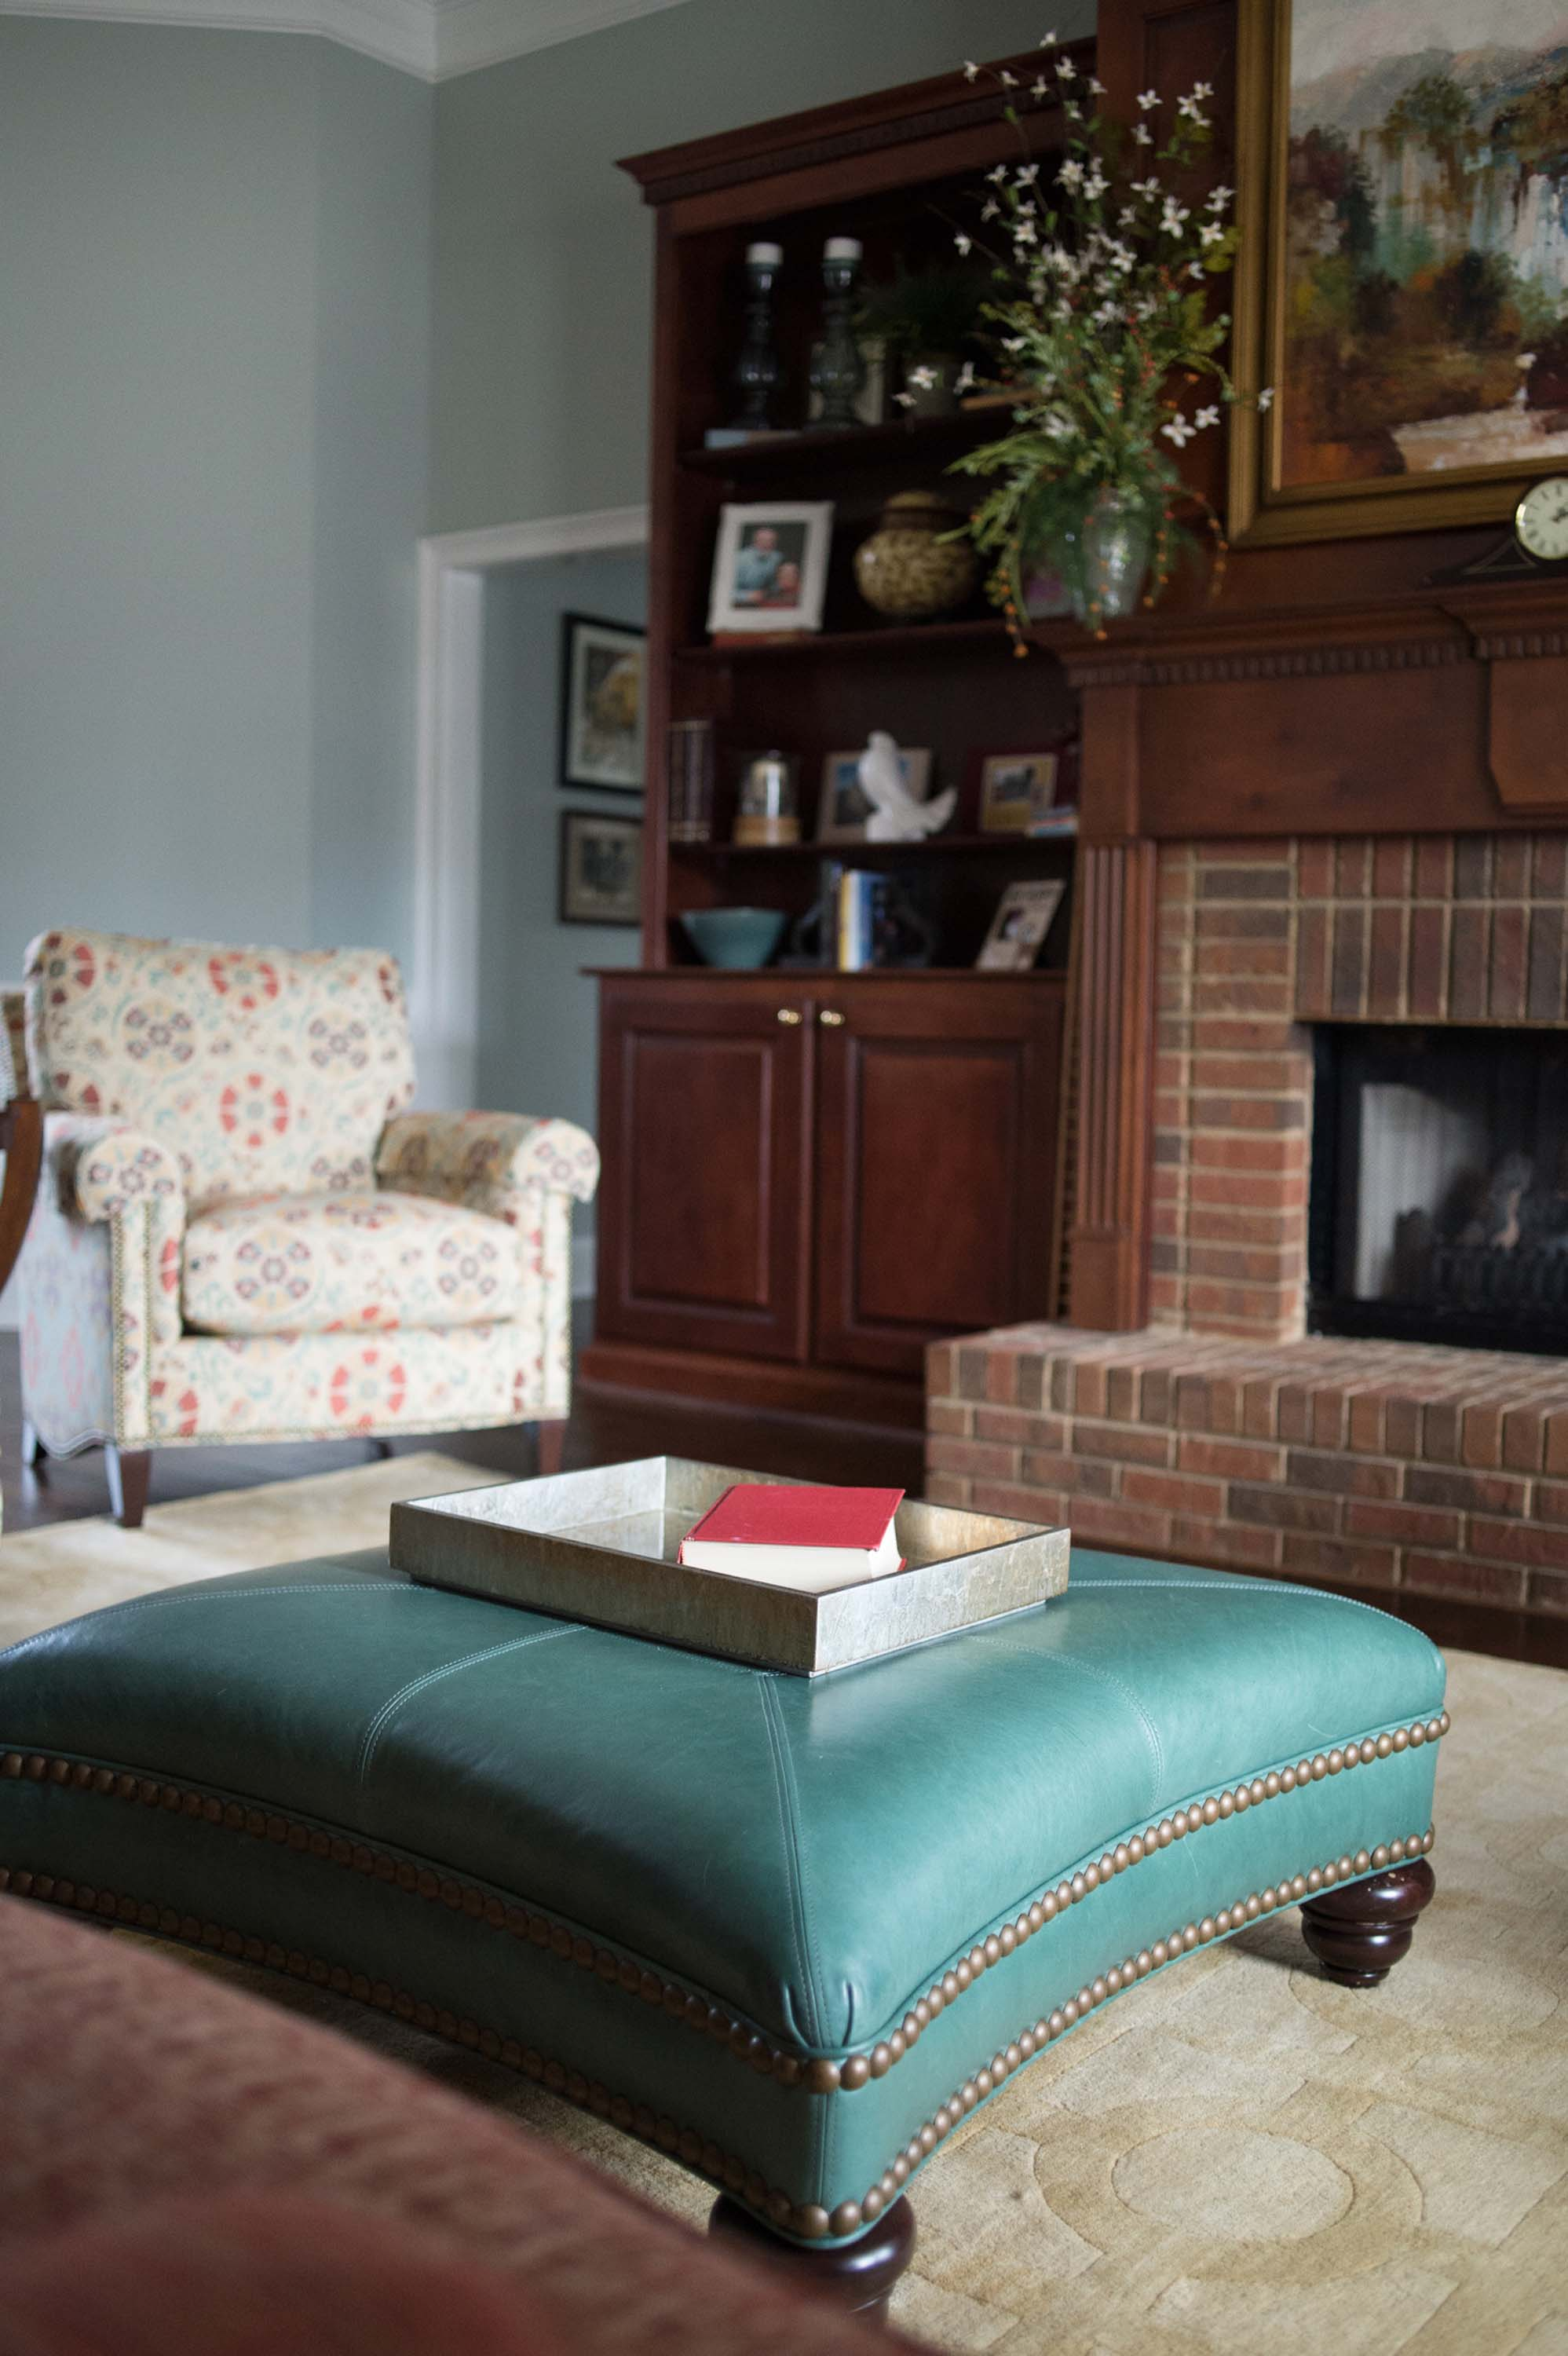 Printed Chair with Built In Bookshelves and Custom Leather Ottoman